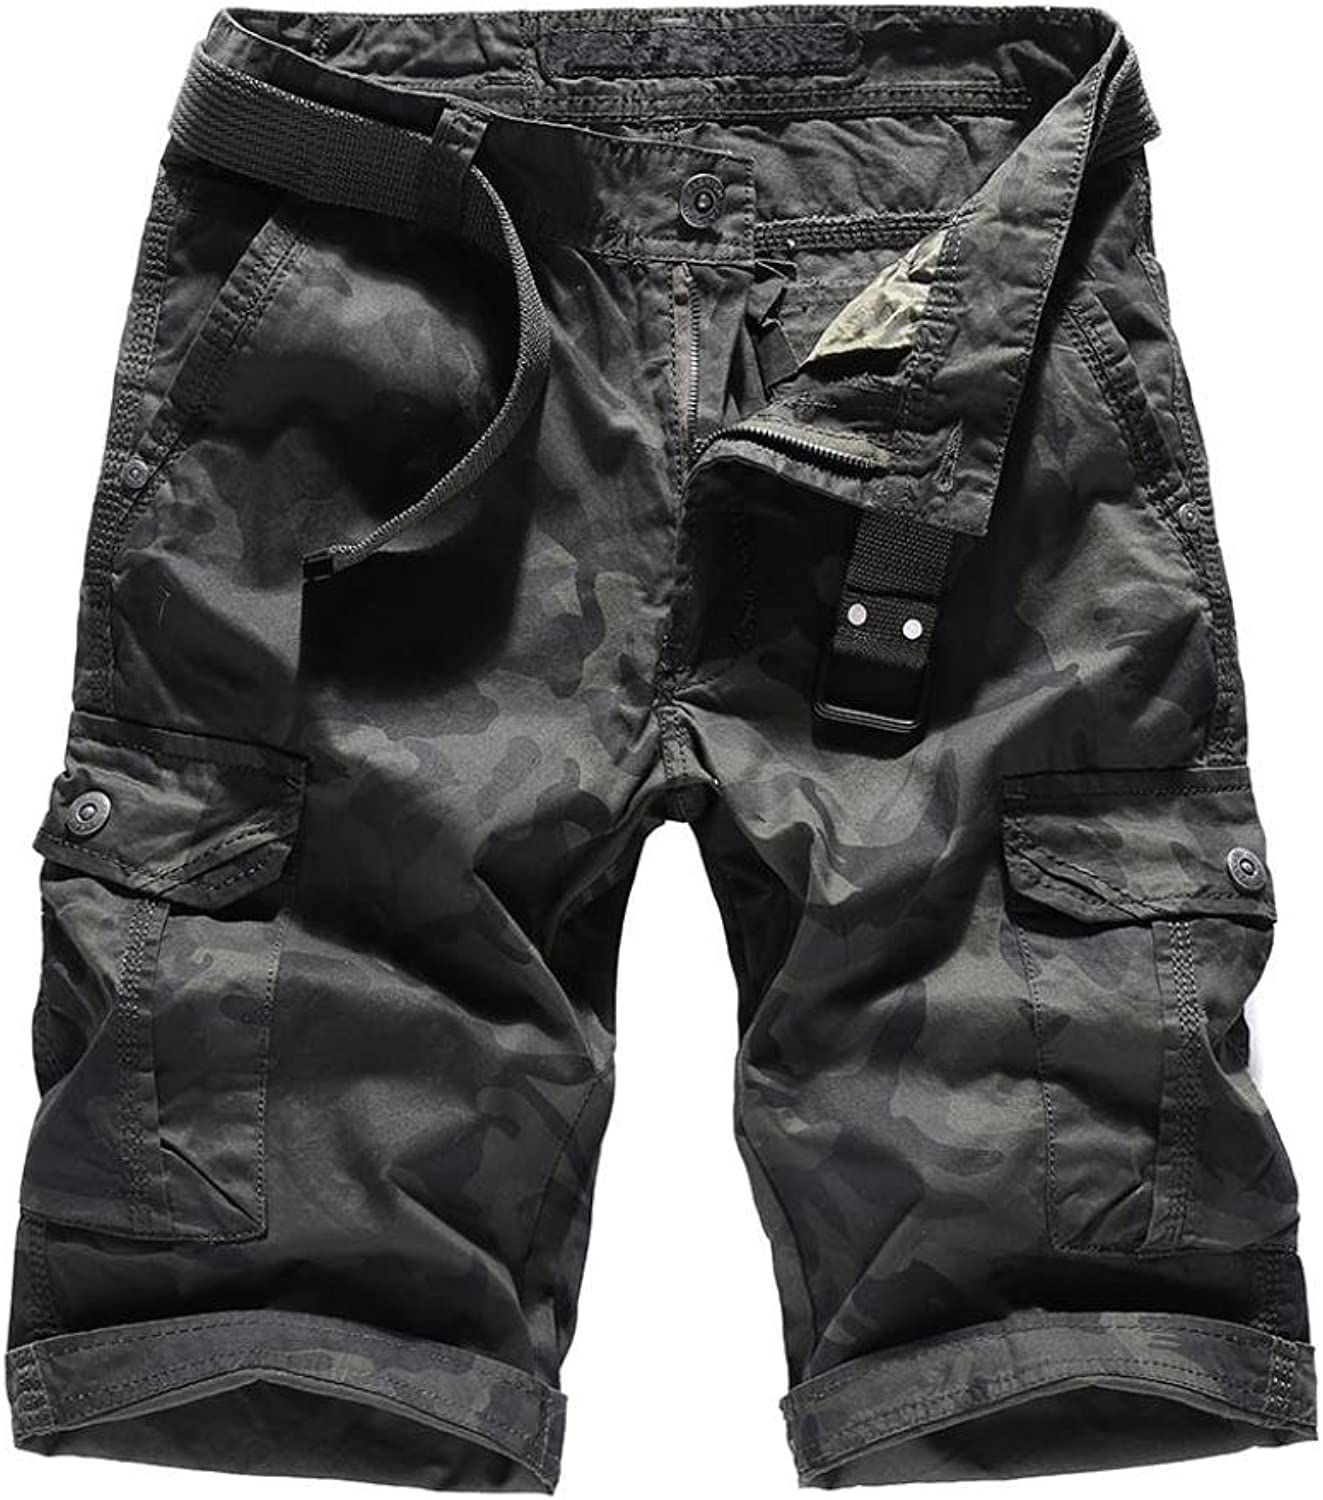 Ximandi Camouflage Camo Cargo Shorts, Male Loose Work Military Shorts with Belt